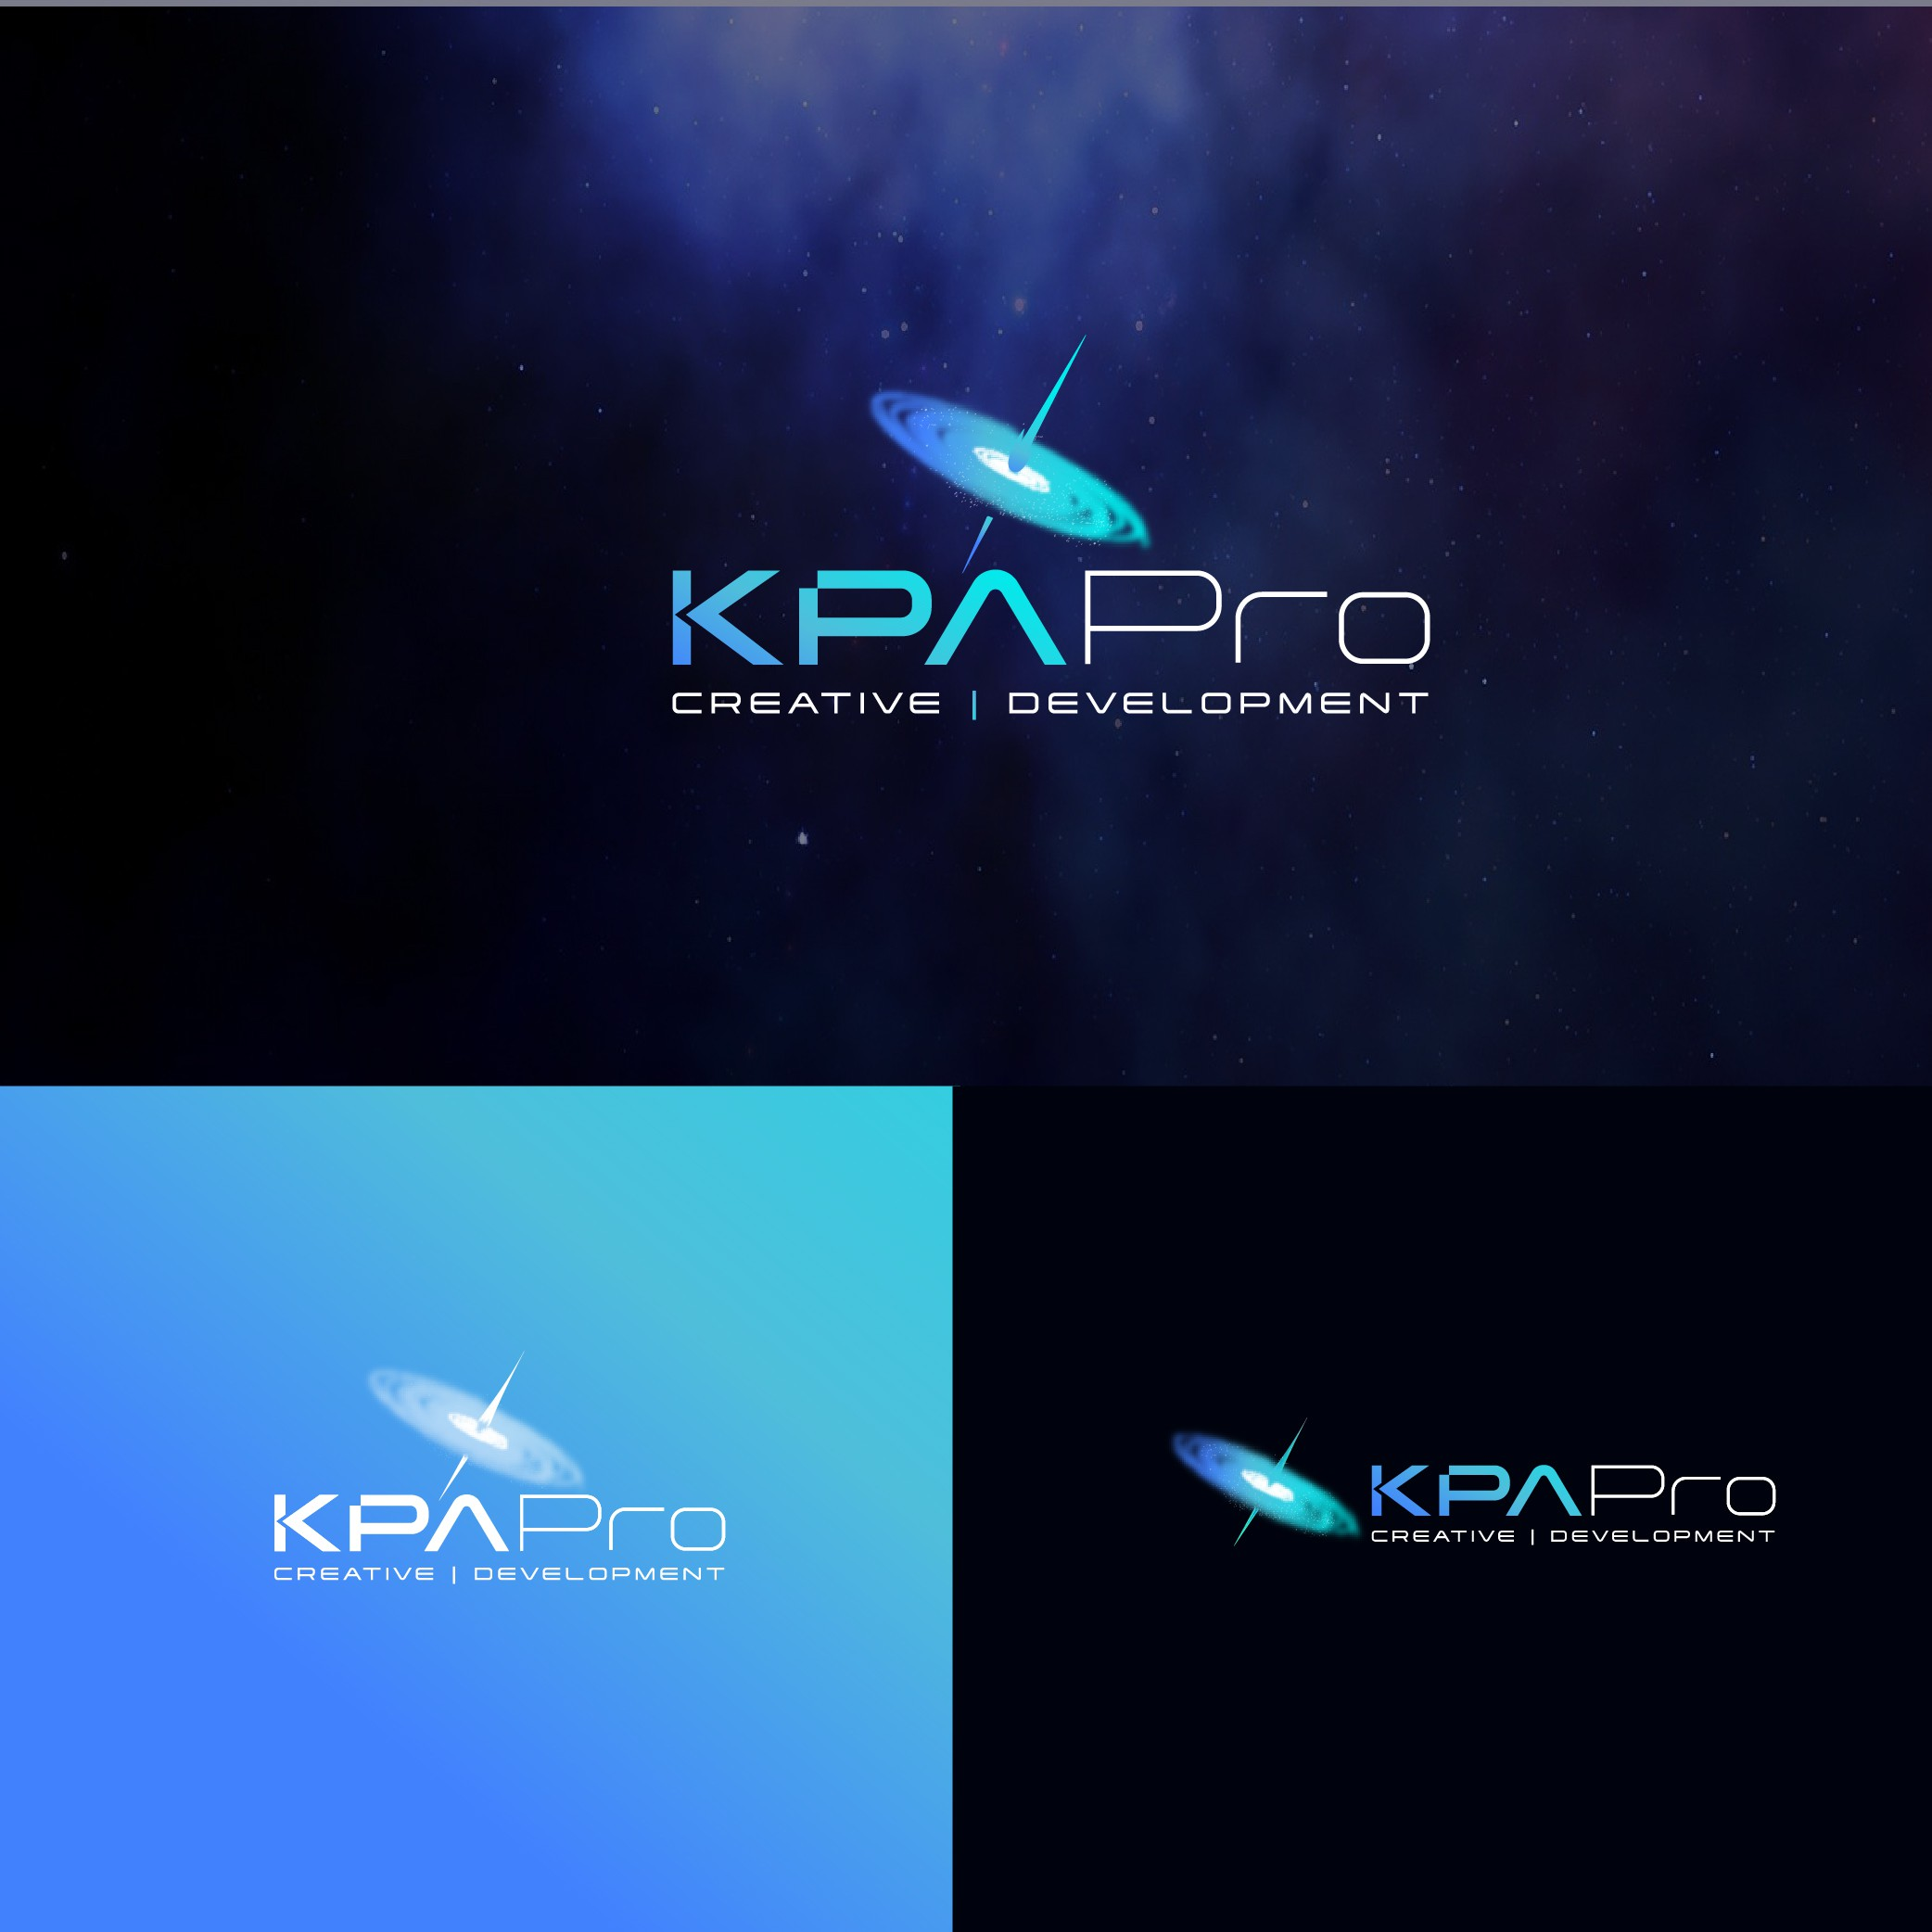 Logo upgrade with strong mark